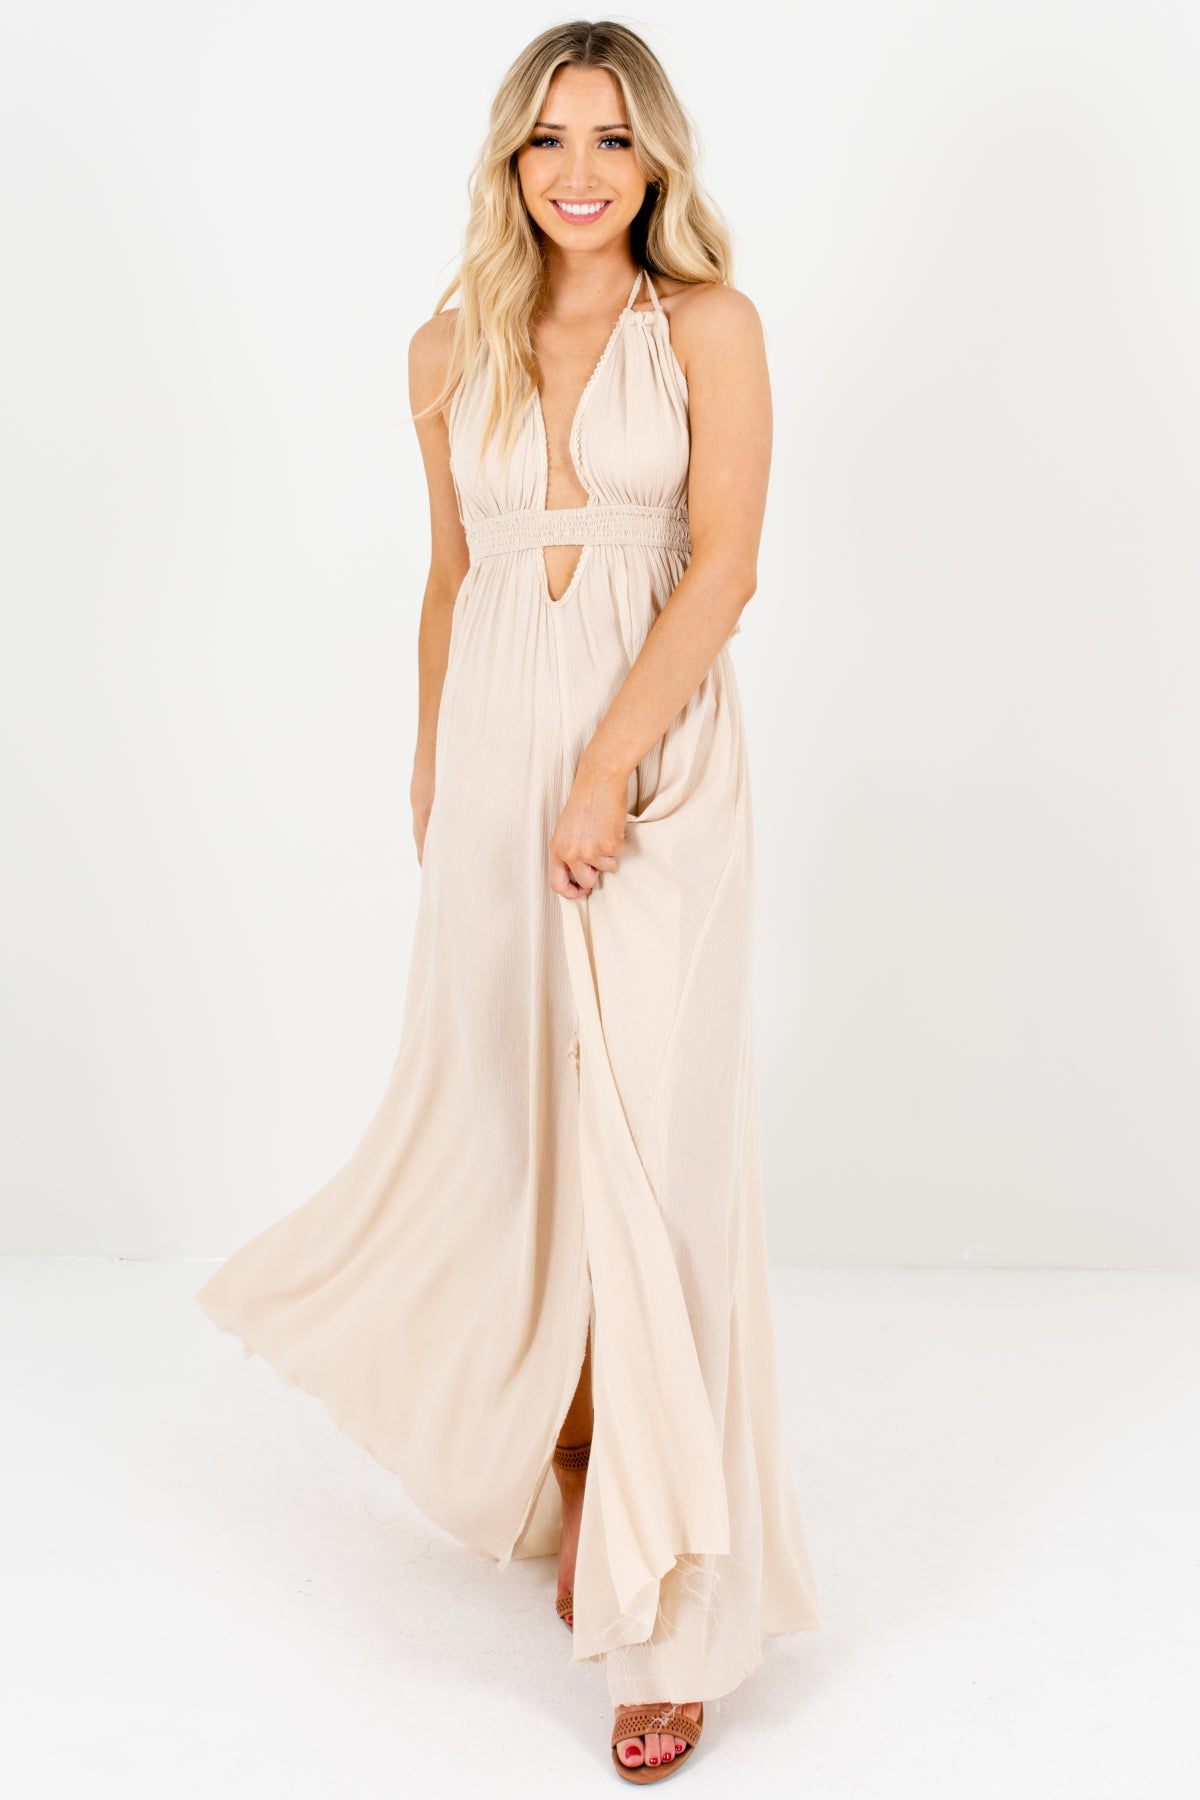 4d1cb518b Beige Long Flowy Maxi Boutique Bohemian Dresses with Open Back and Tassels